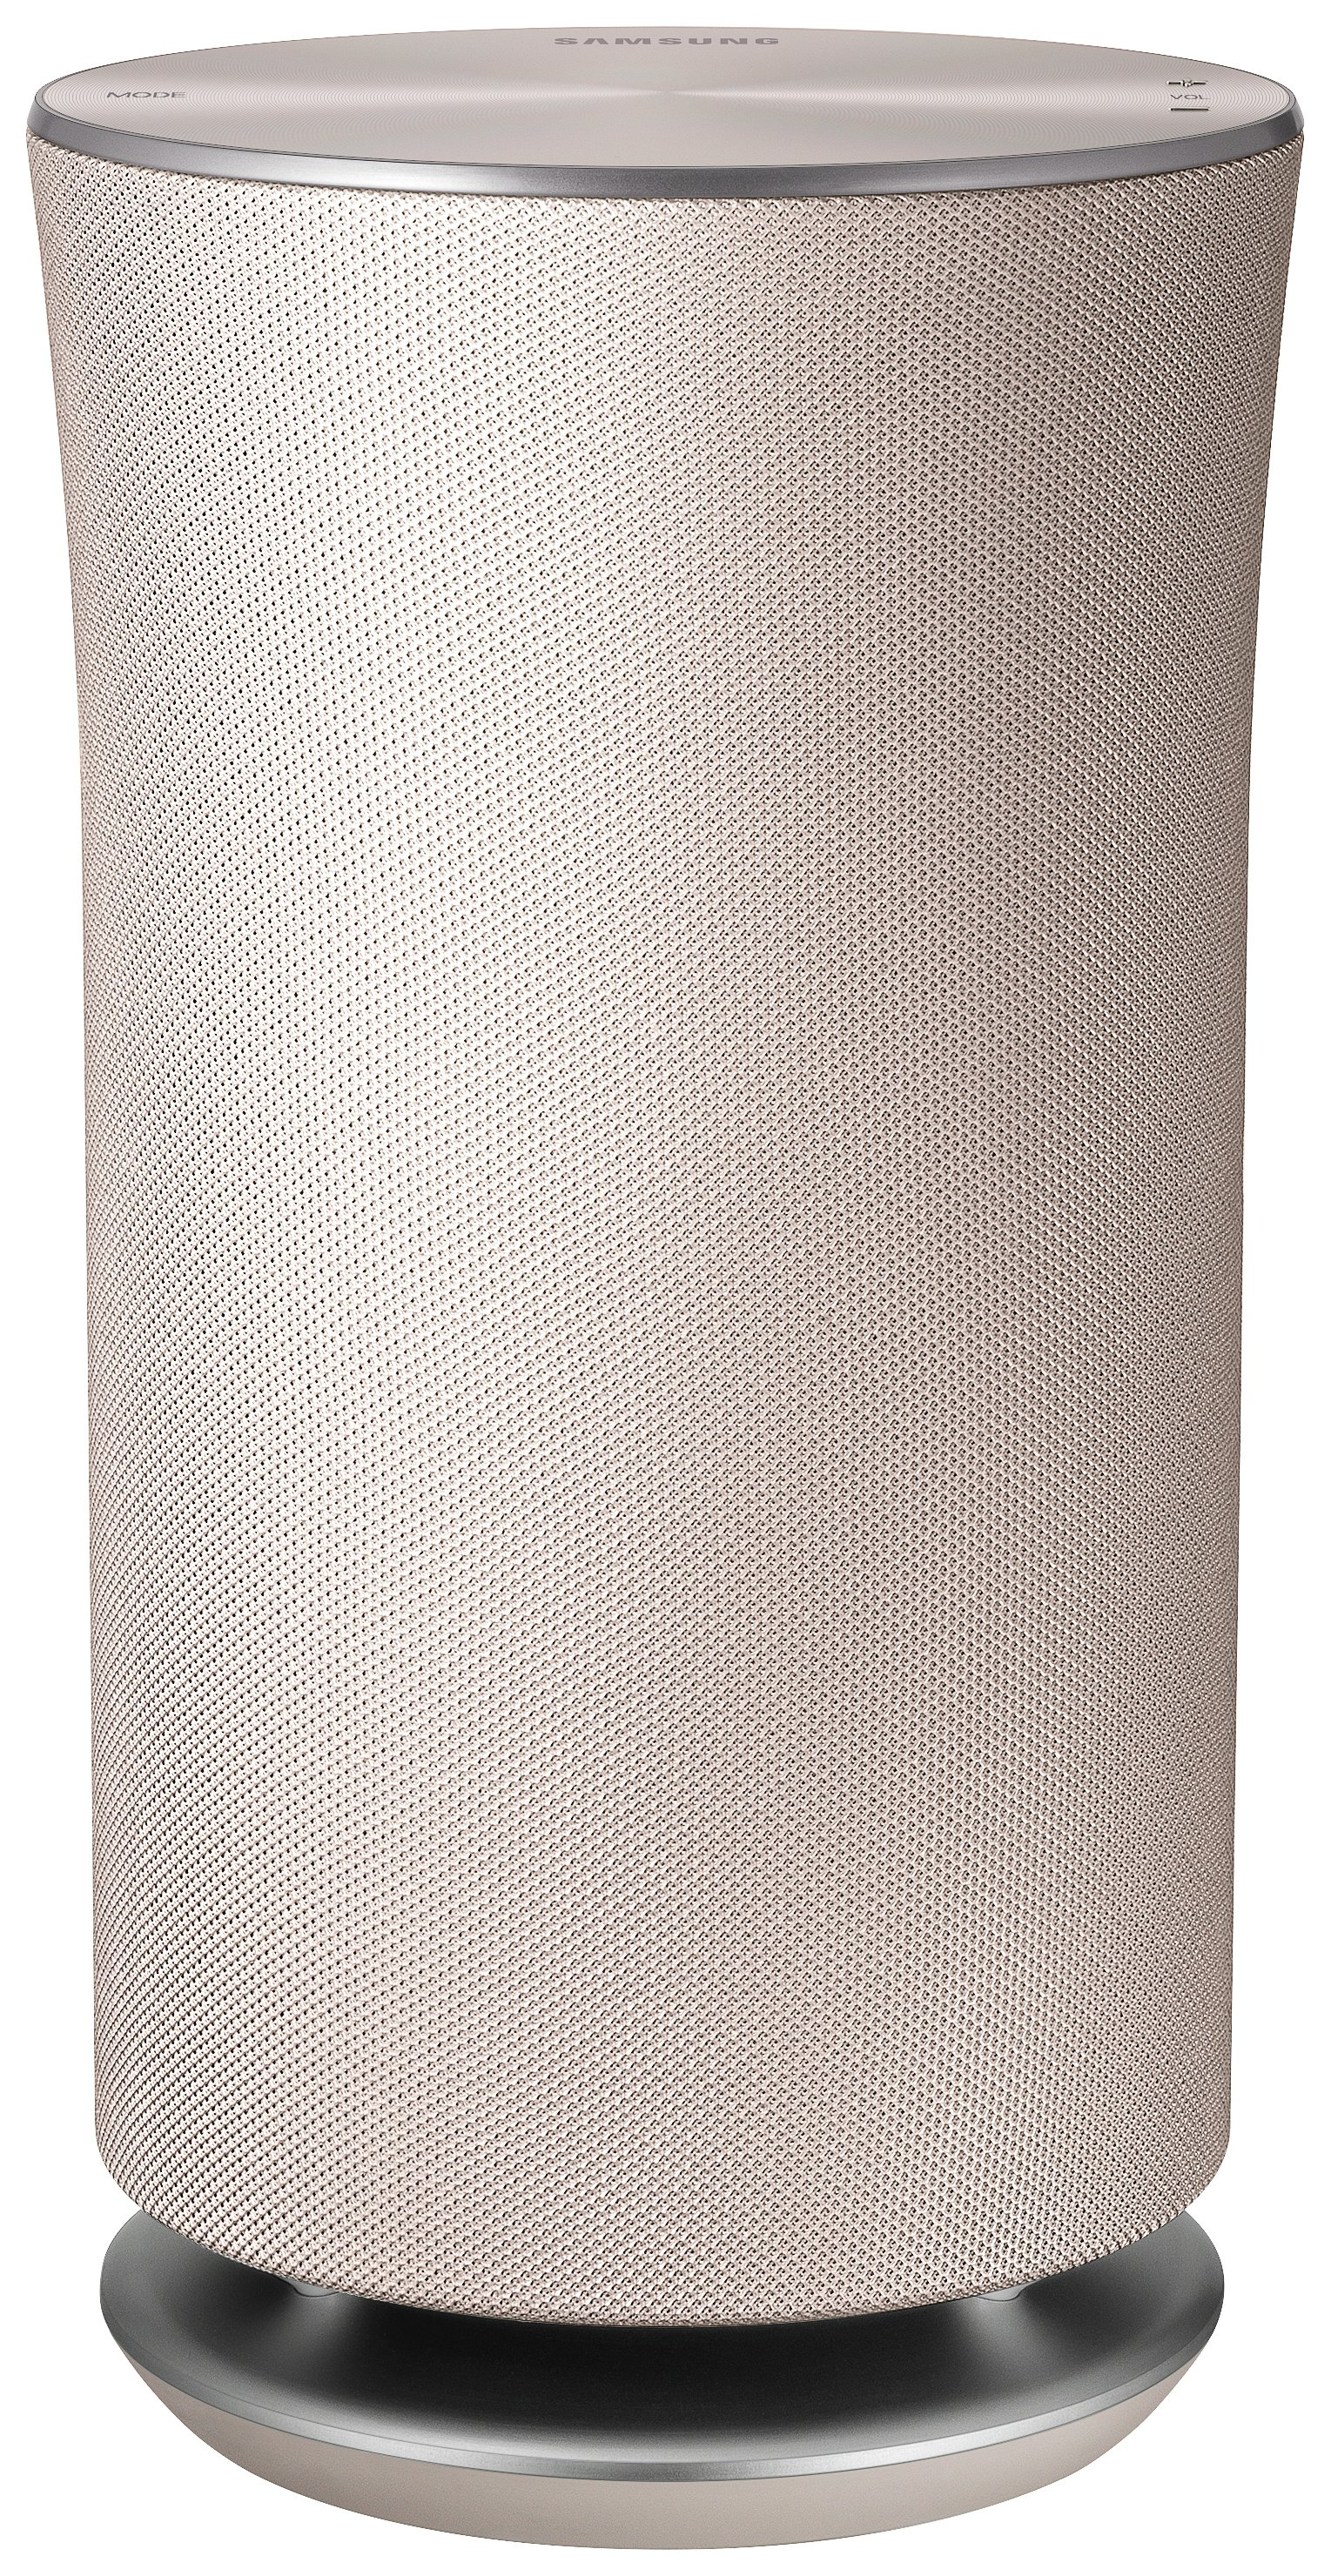 samsung-r3-360-sound-wireless-speaker-ivy